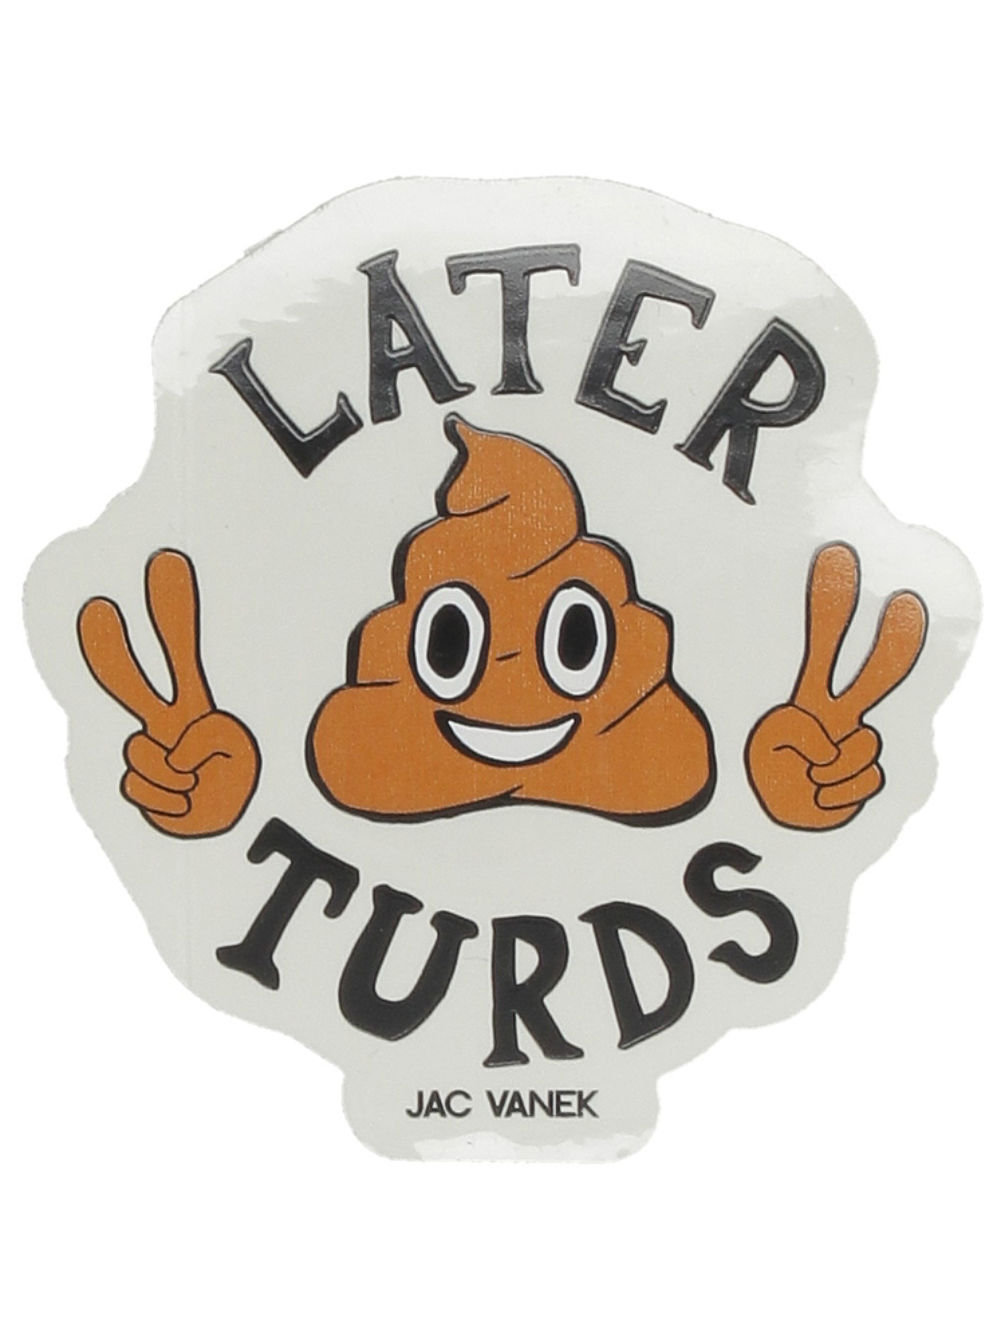 Later Turds Sticker